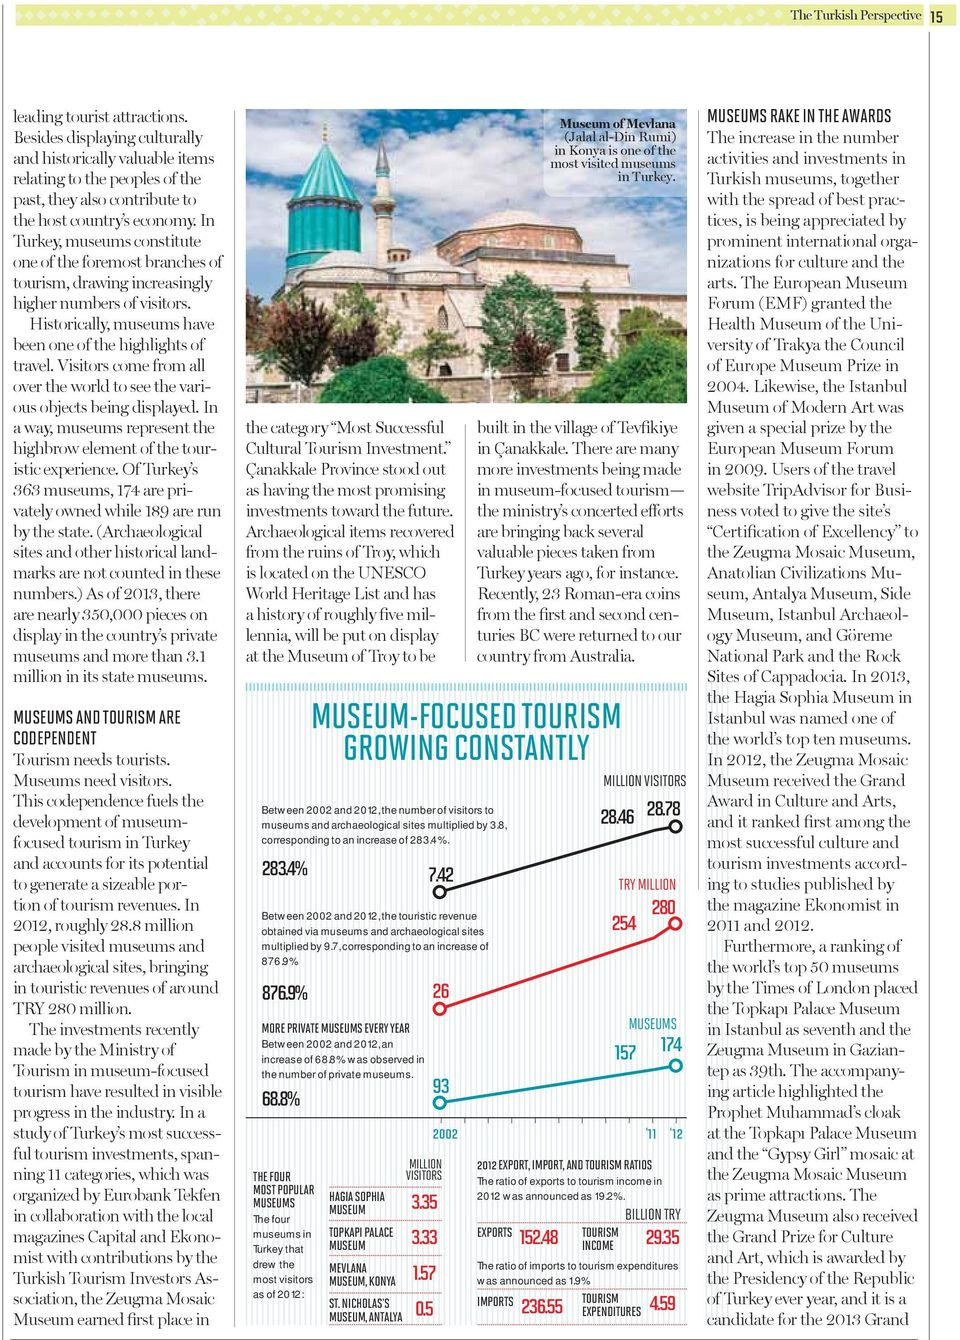 In Turkey, museums constitute one of the foremost branches of tourism, drawing increasingly higher numbers of visitors. Historically, museums have been one of the highlights of travel.